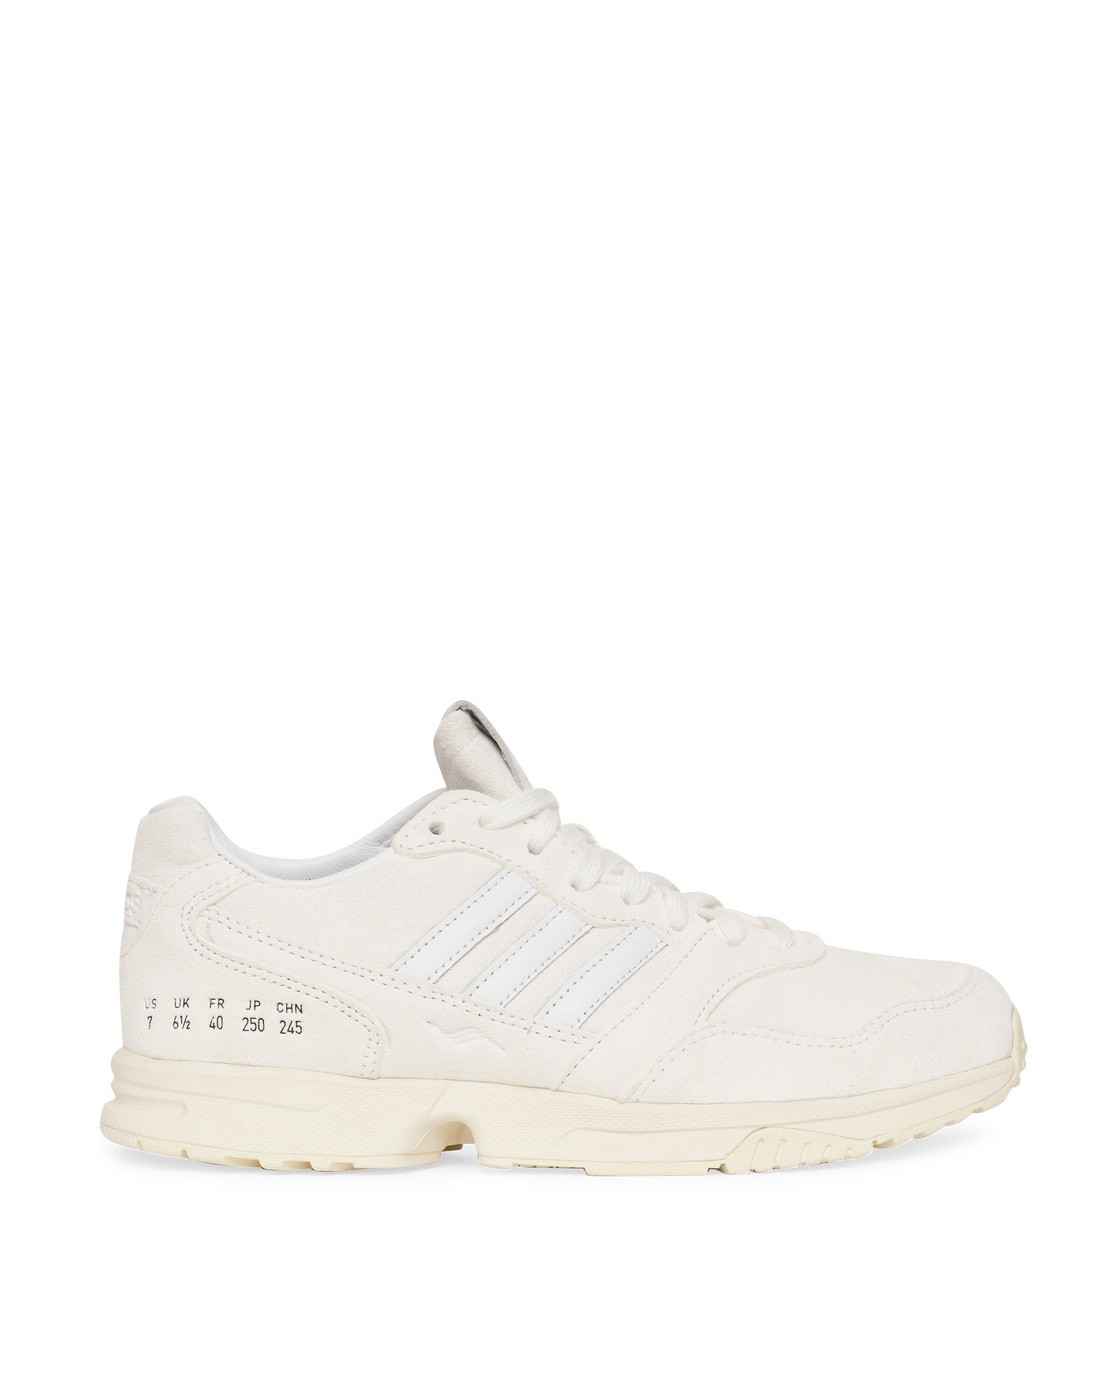 Adidas Originals Zx 1000 Sneakers Ftwr White/Off White